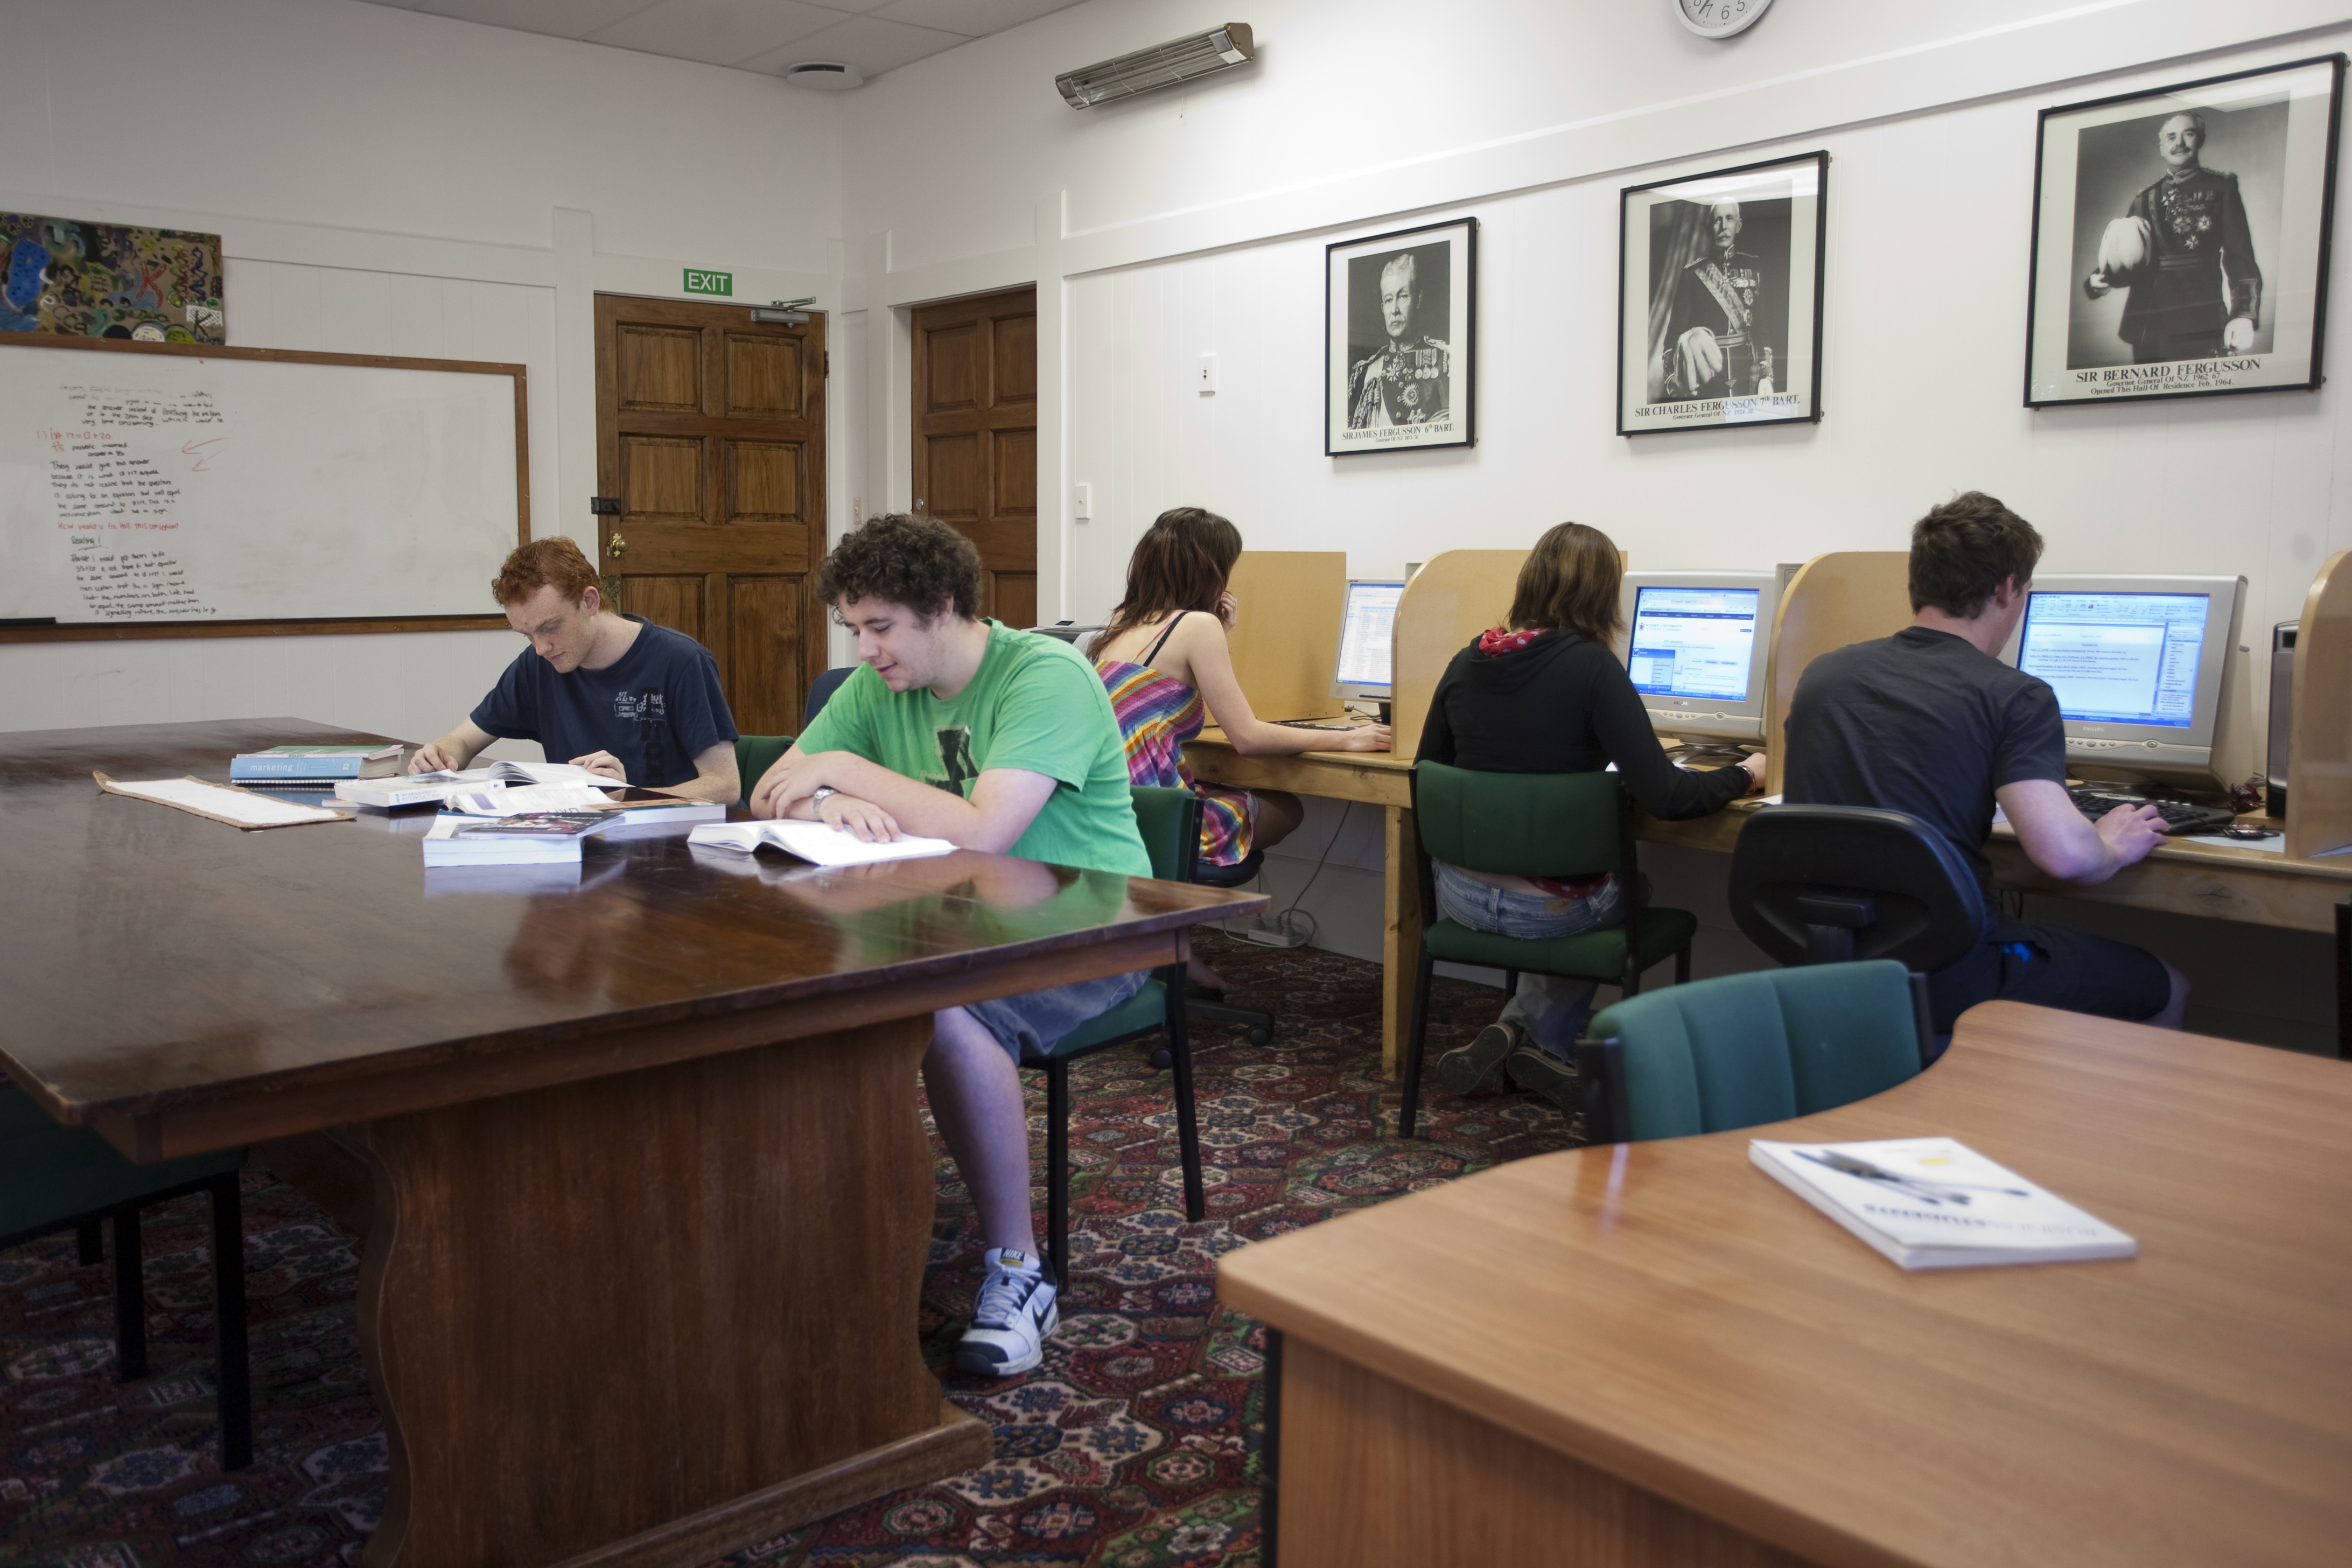 Rooms and facilities massey university - Images for study room ...